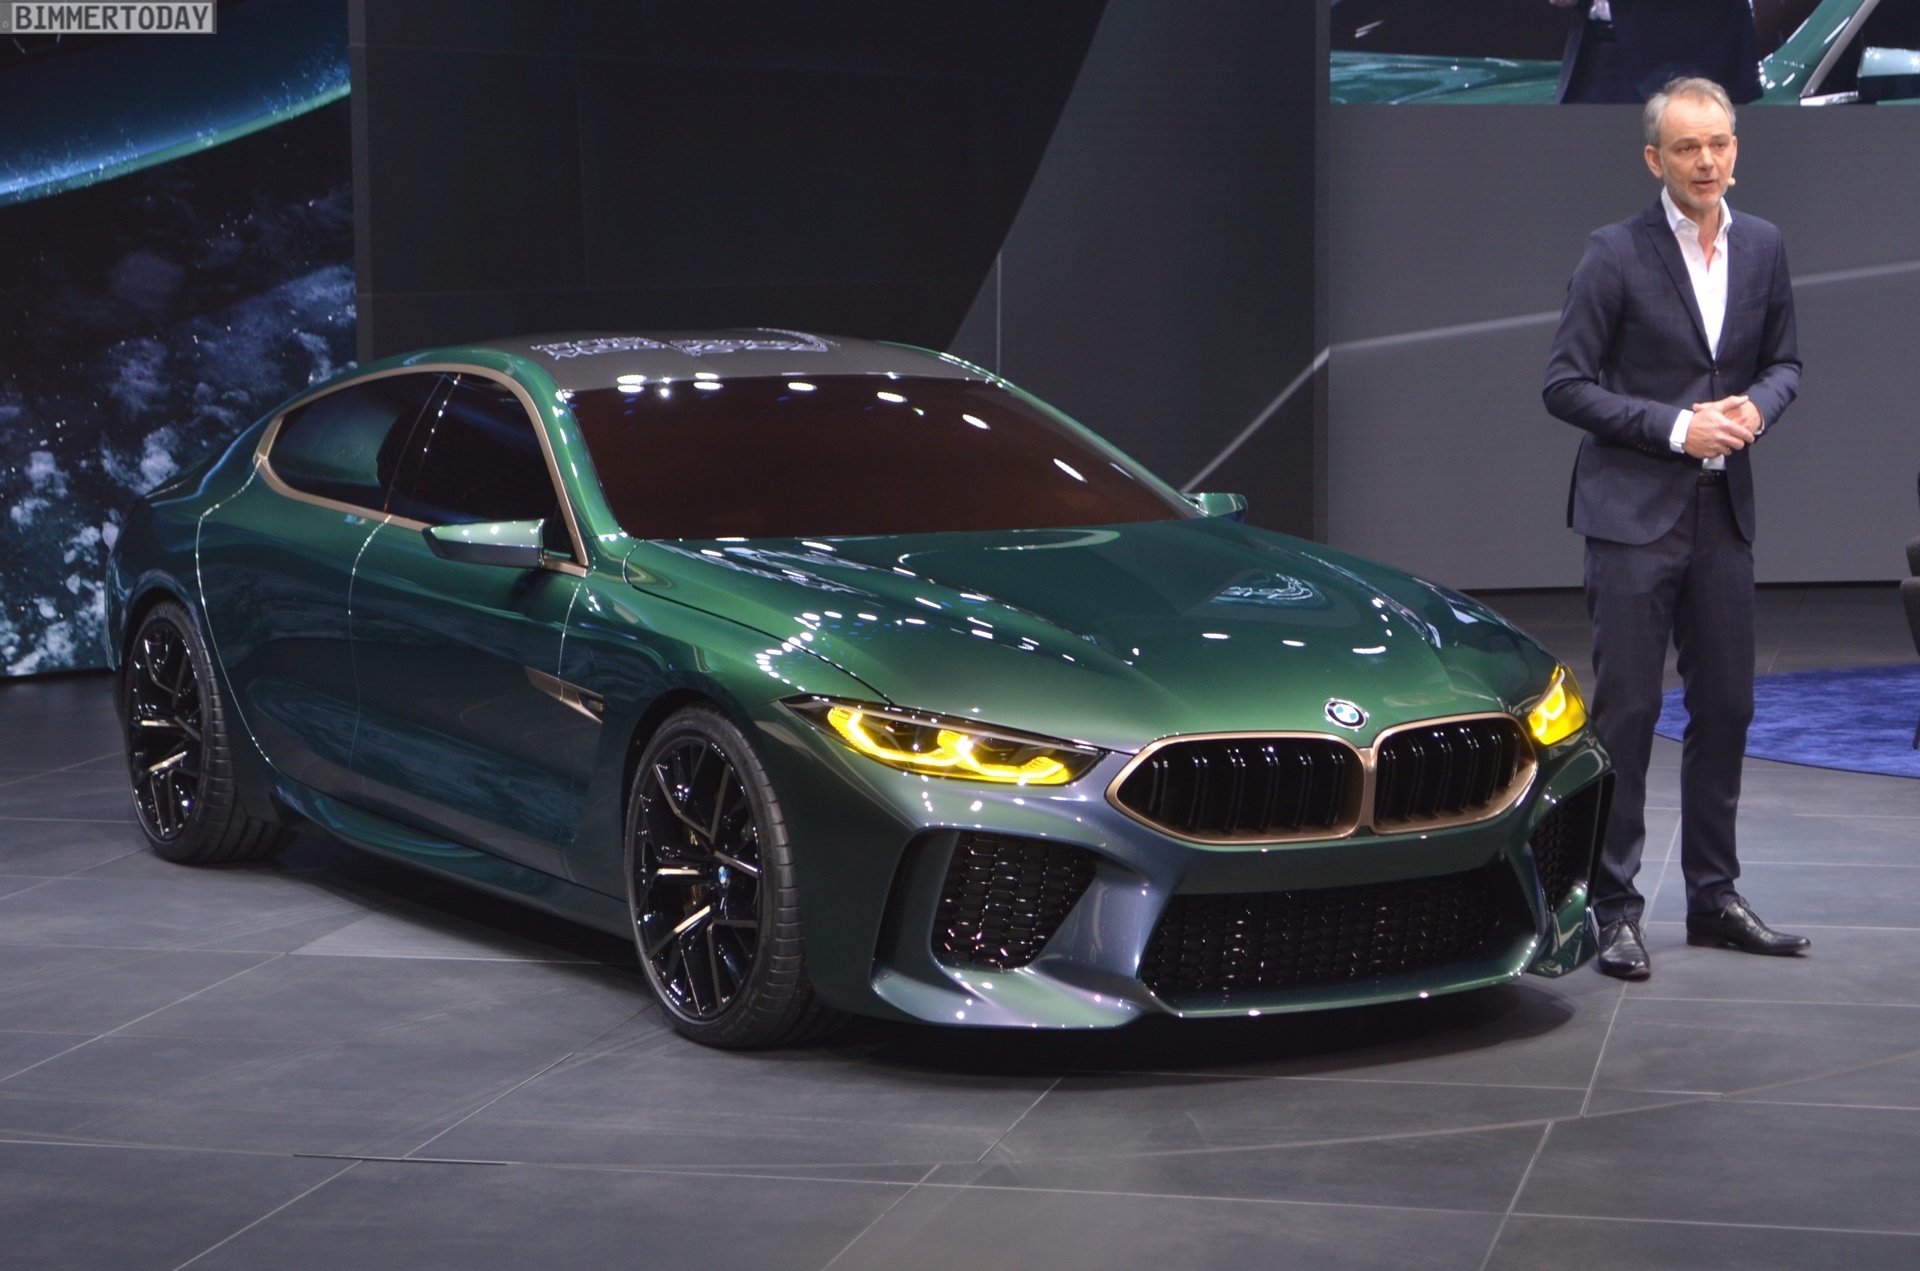 Bmw Concept M8 Gran Coupe Real Life Photos